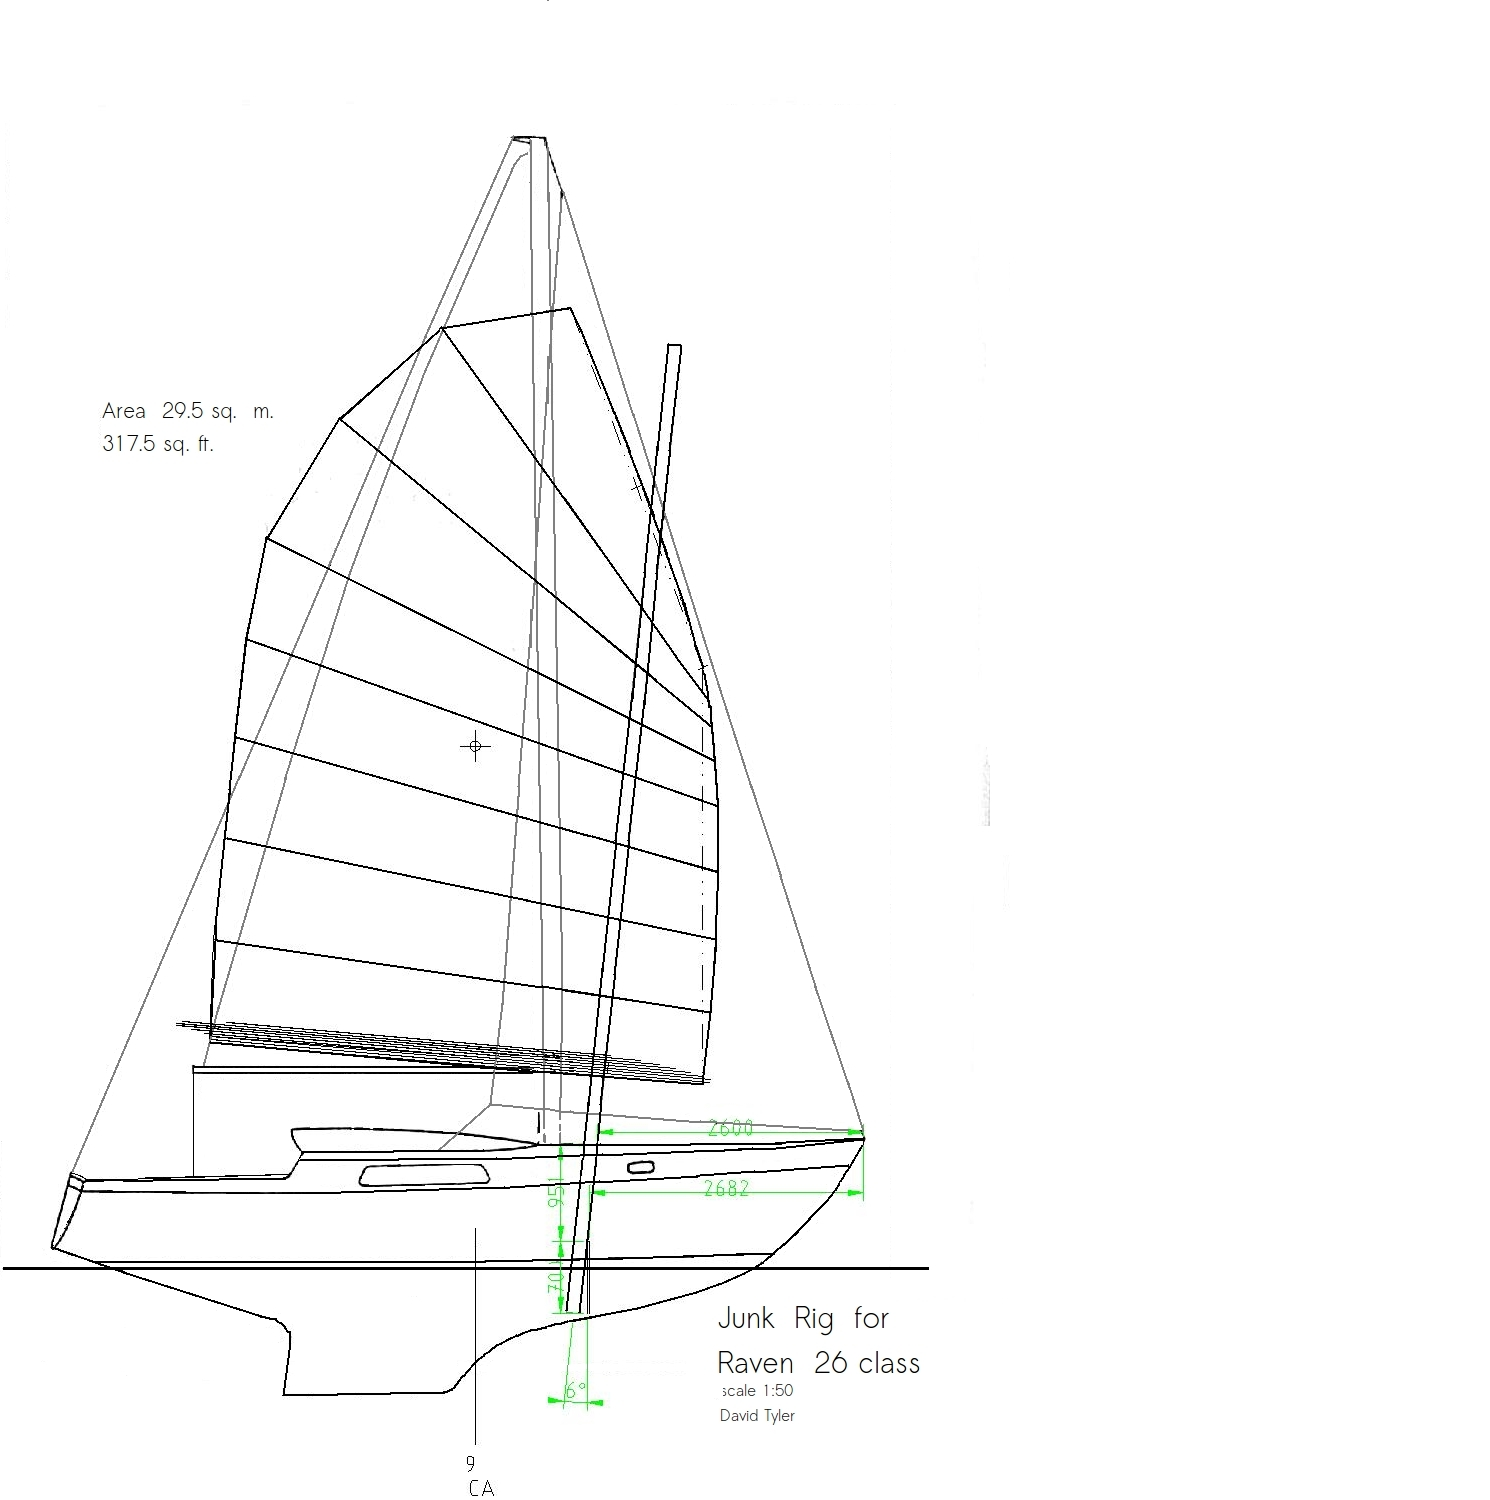 voyaging annie hill the transformation of joshua toiled away at my drawings but one morning i opened my inbox and there was a pdf document a perfectly executed sail plan